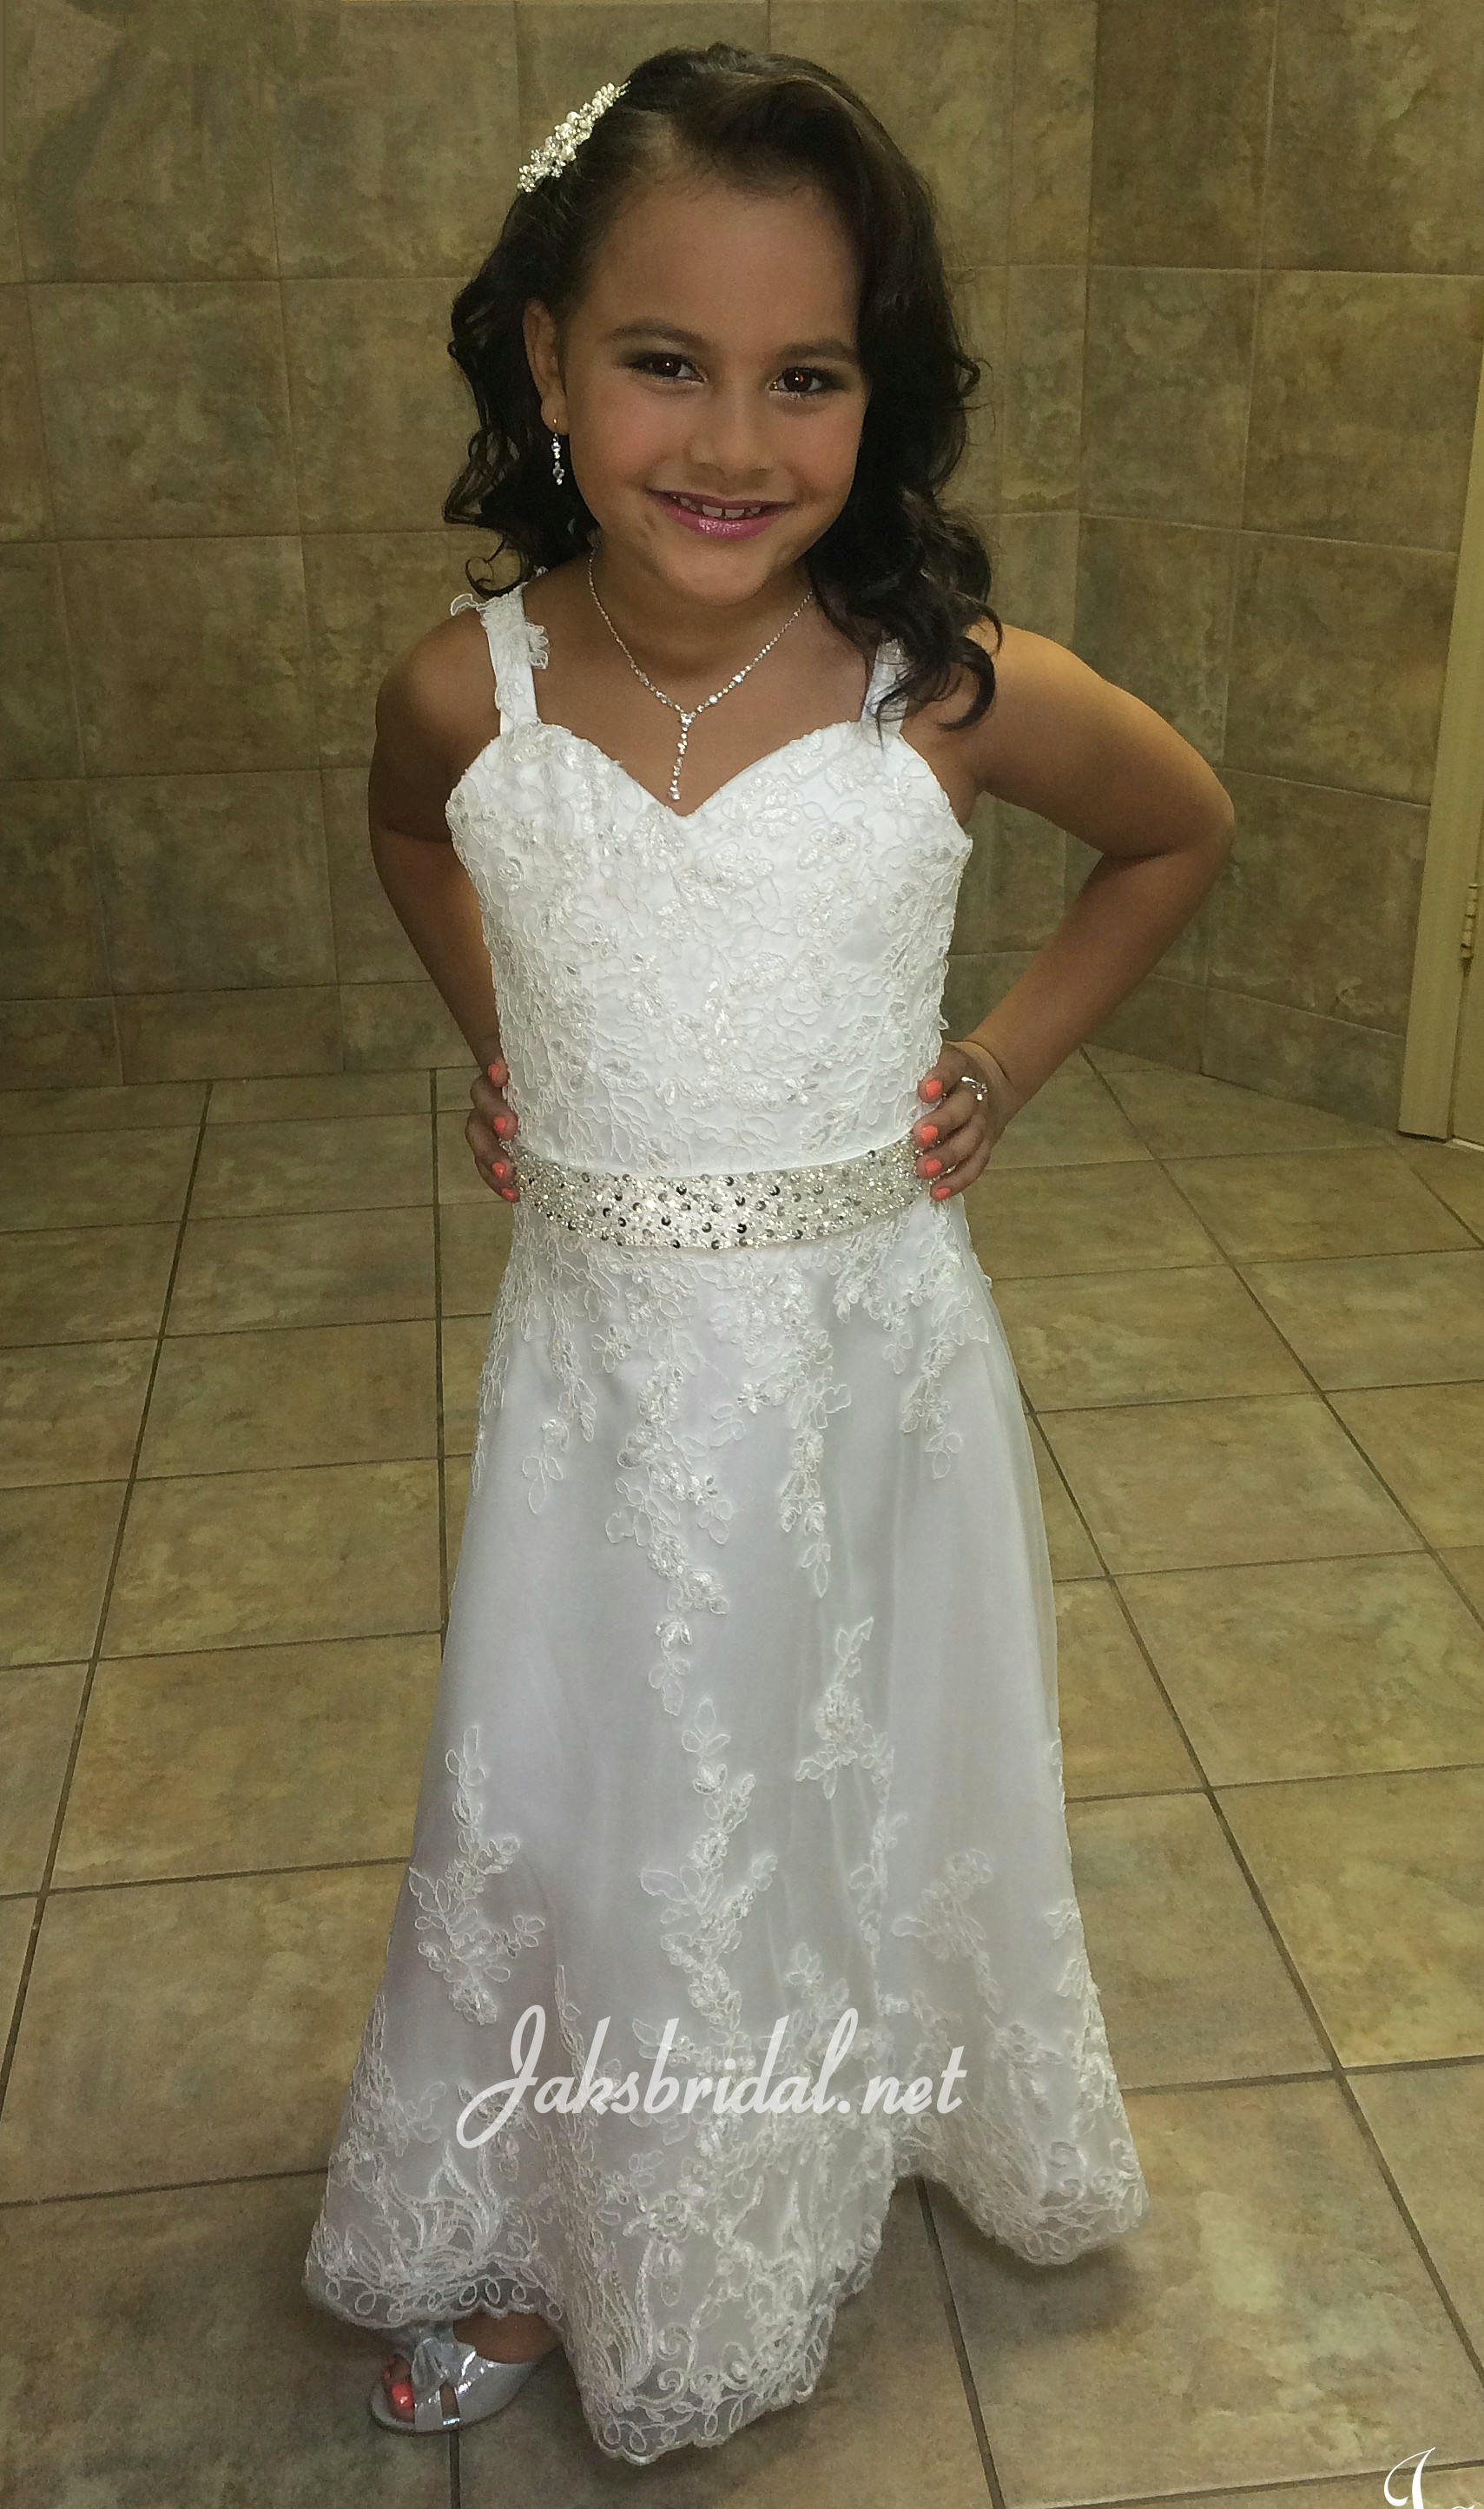 Sweetheart lace flower girl dress